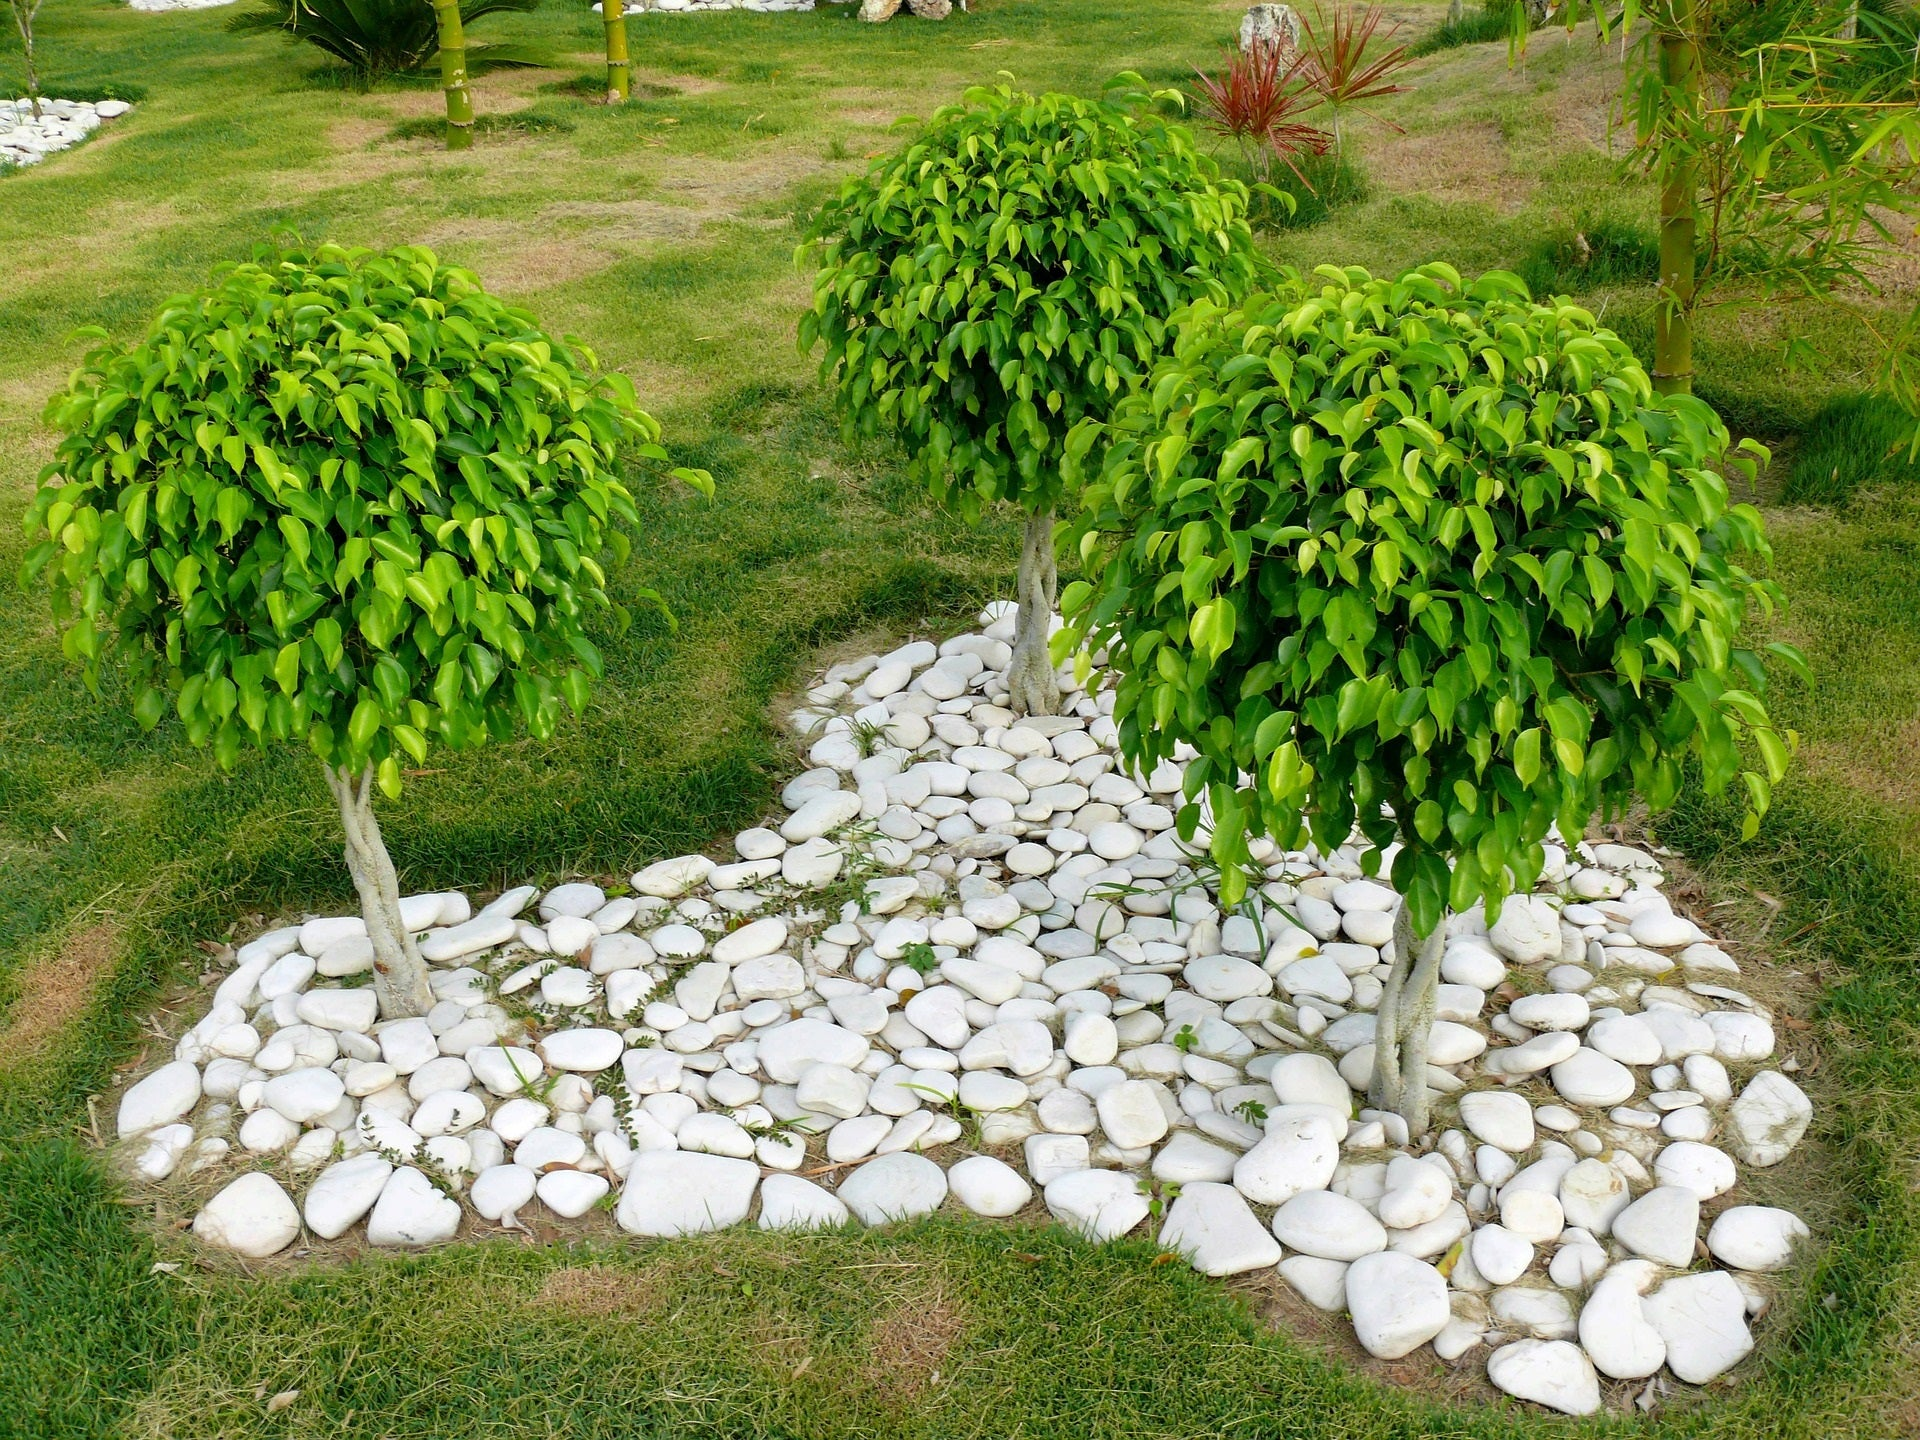 Taking Care of Ficus Benjamina: What to do with Insects & Fungal Diseases